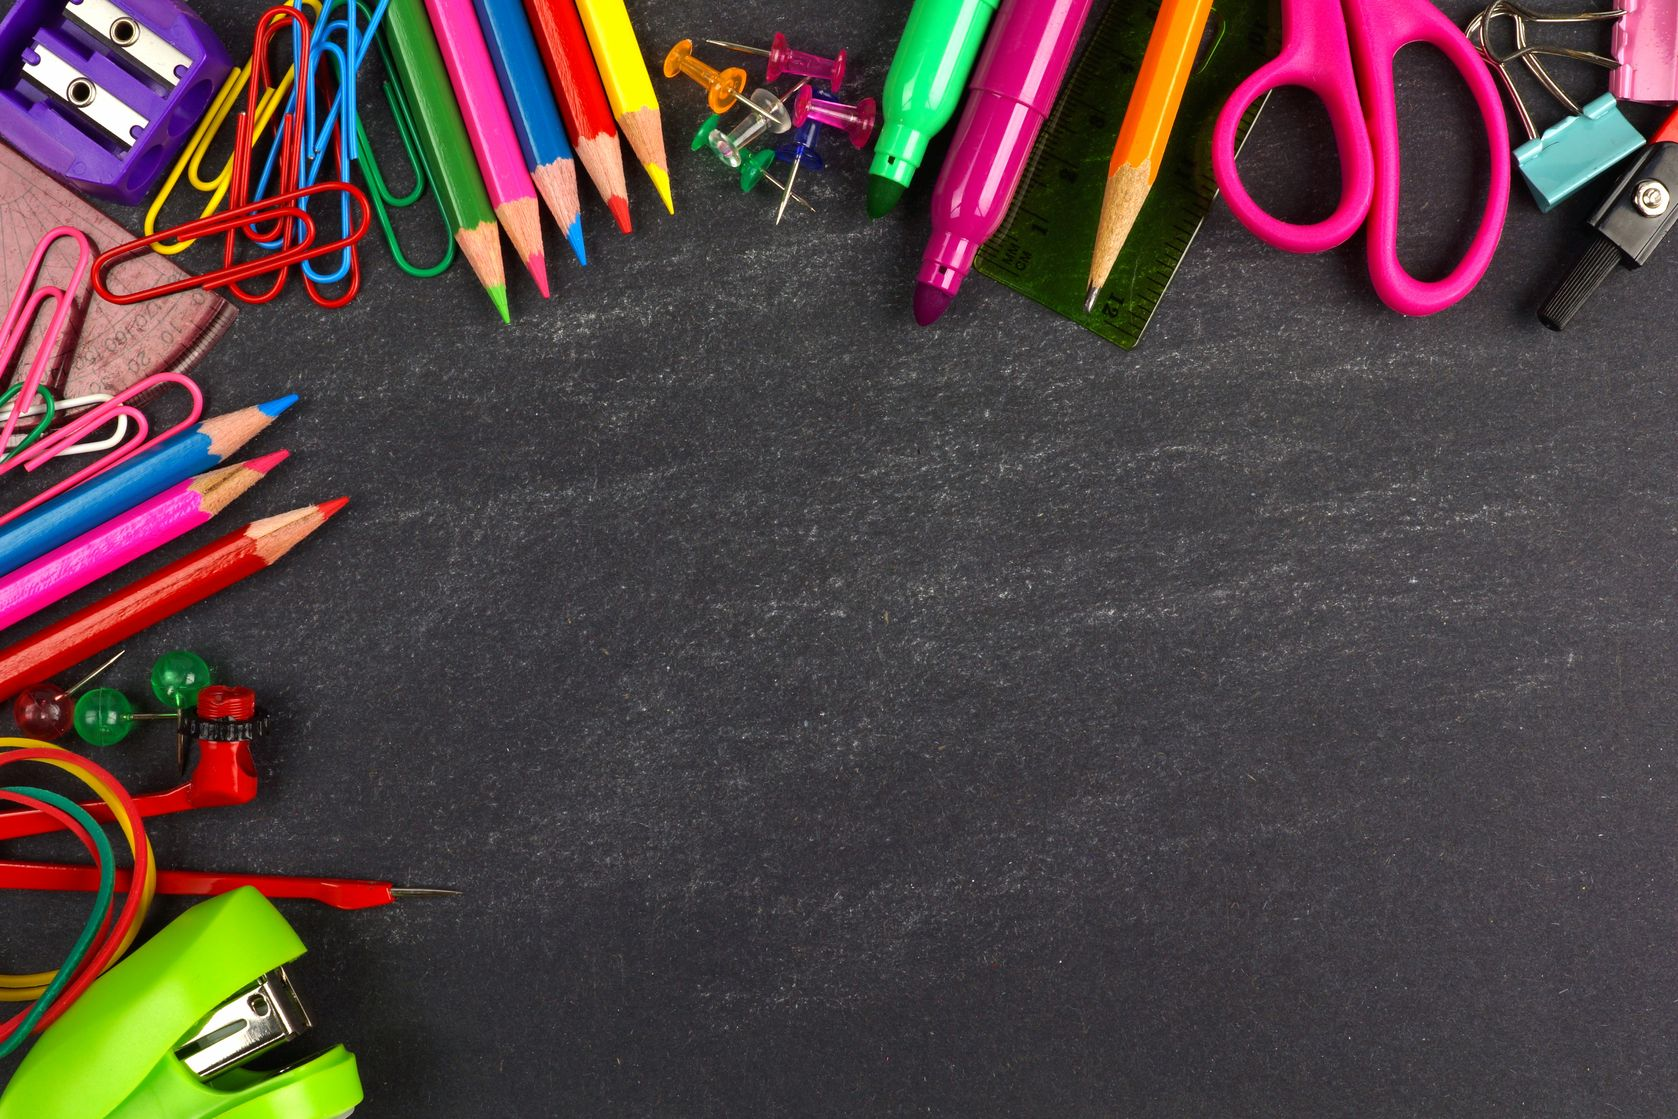 Art supplies on a chalkboard background